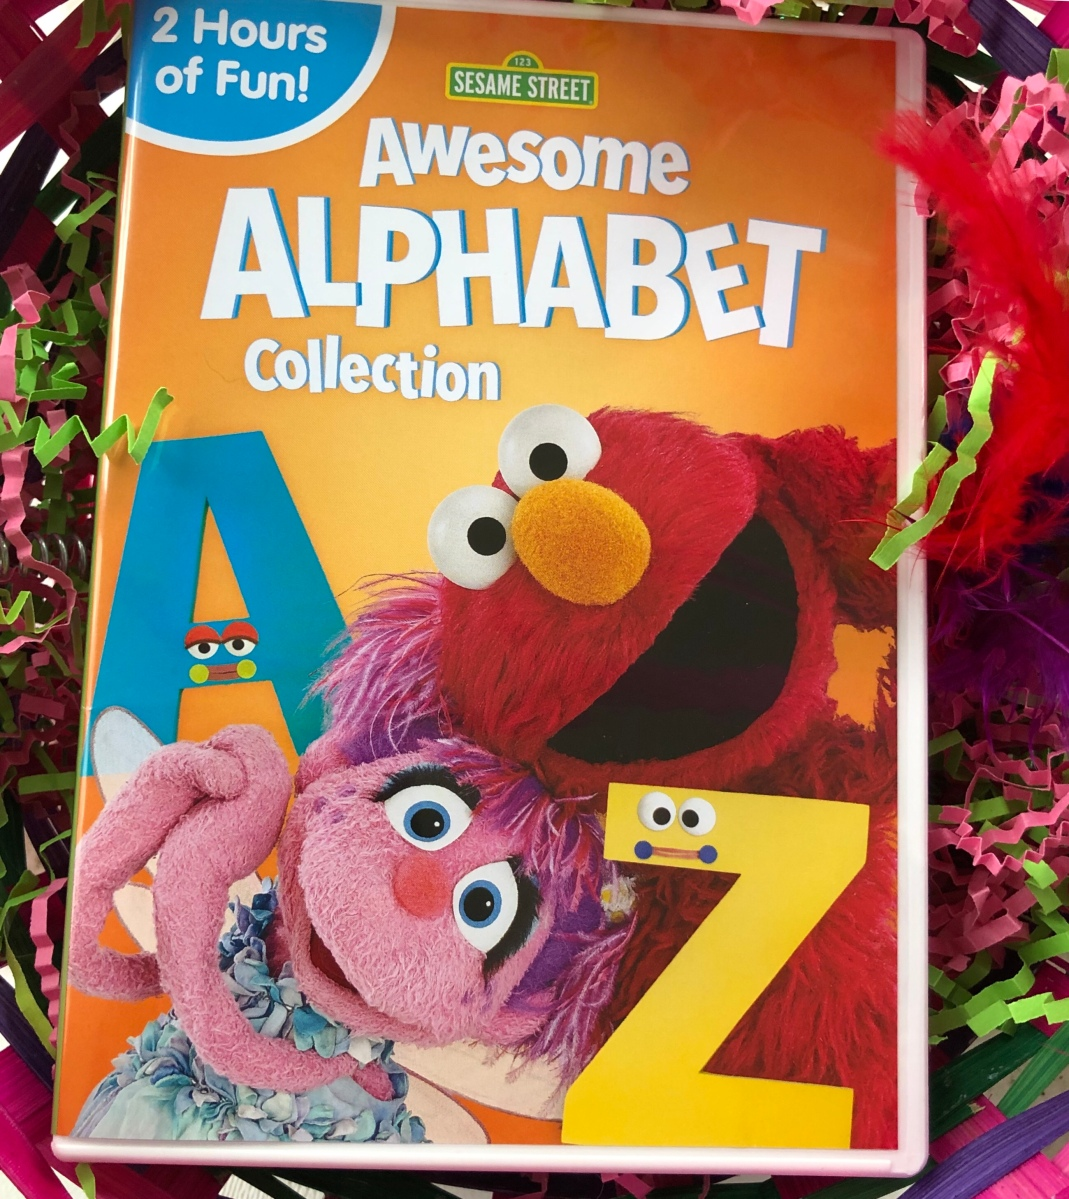 Sesame Street: Awesome Alphabet Collection Is On DVD On